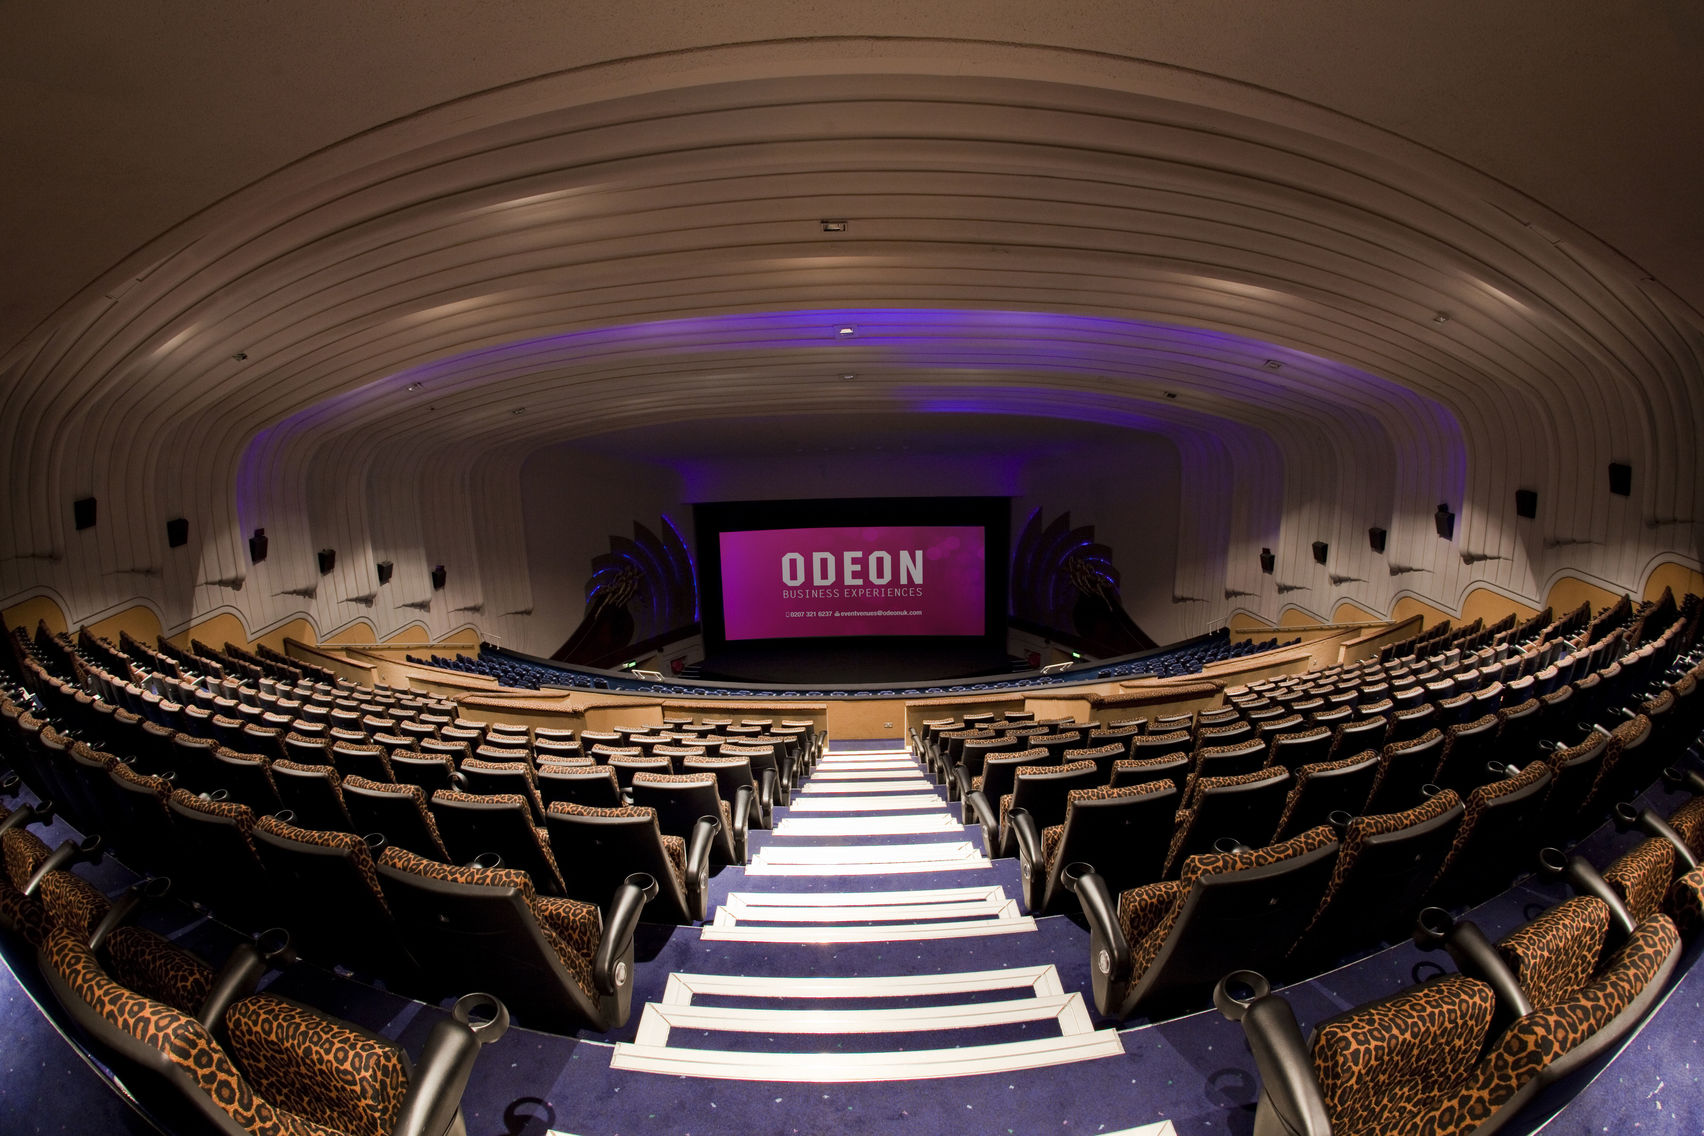 Odeon cinema hire London